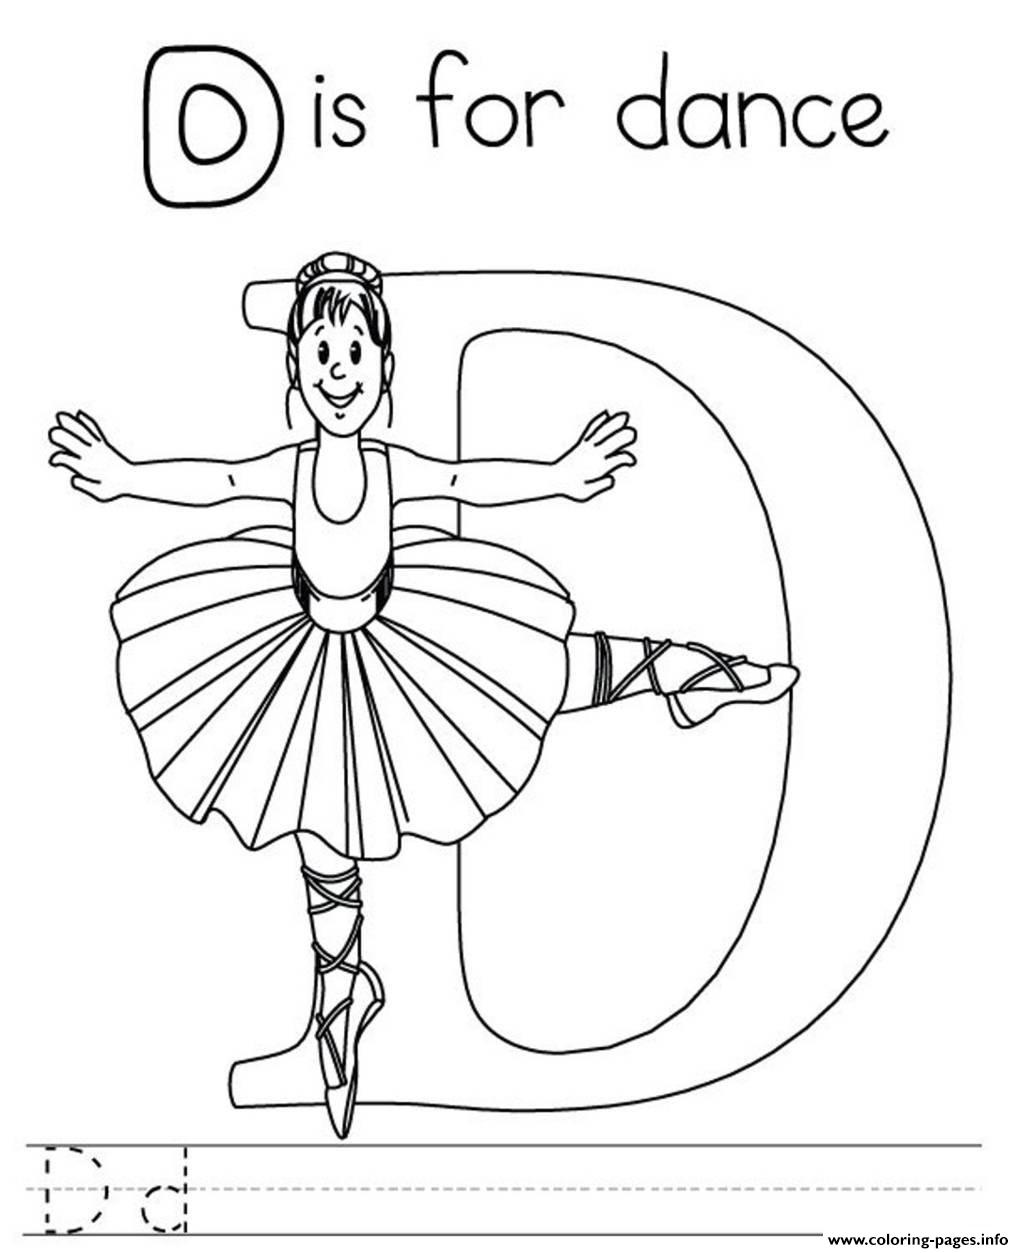 Printable Alphabet S Letter D For Dance0e7e Coloring Pages